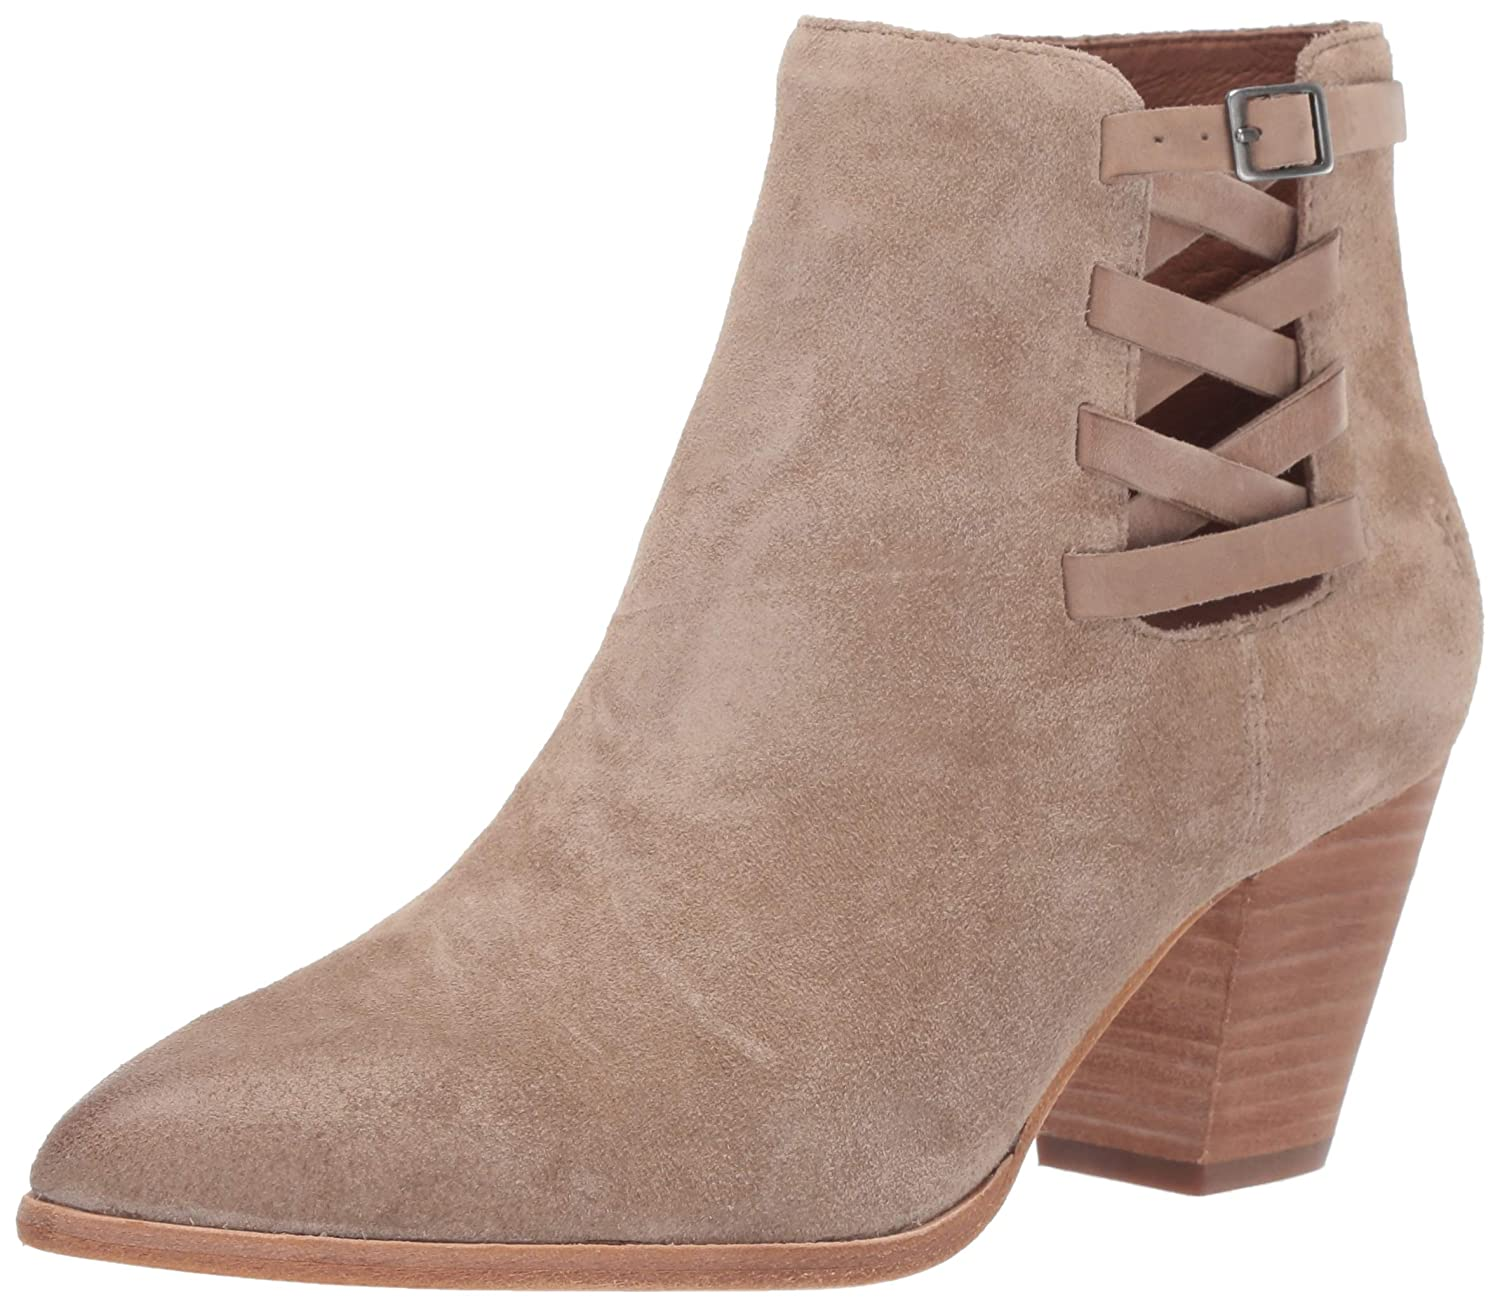 Beige Frye Womens Reed Strappy Bootie Ankle Boot